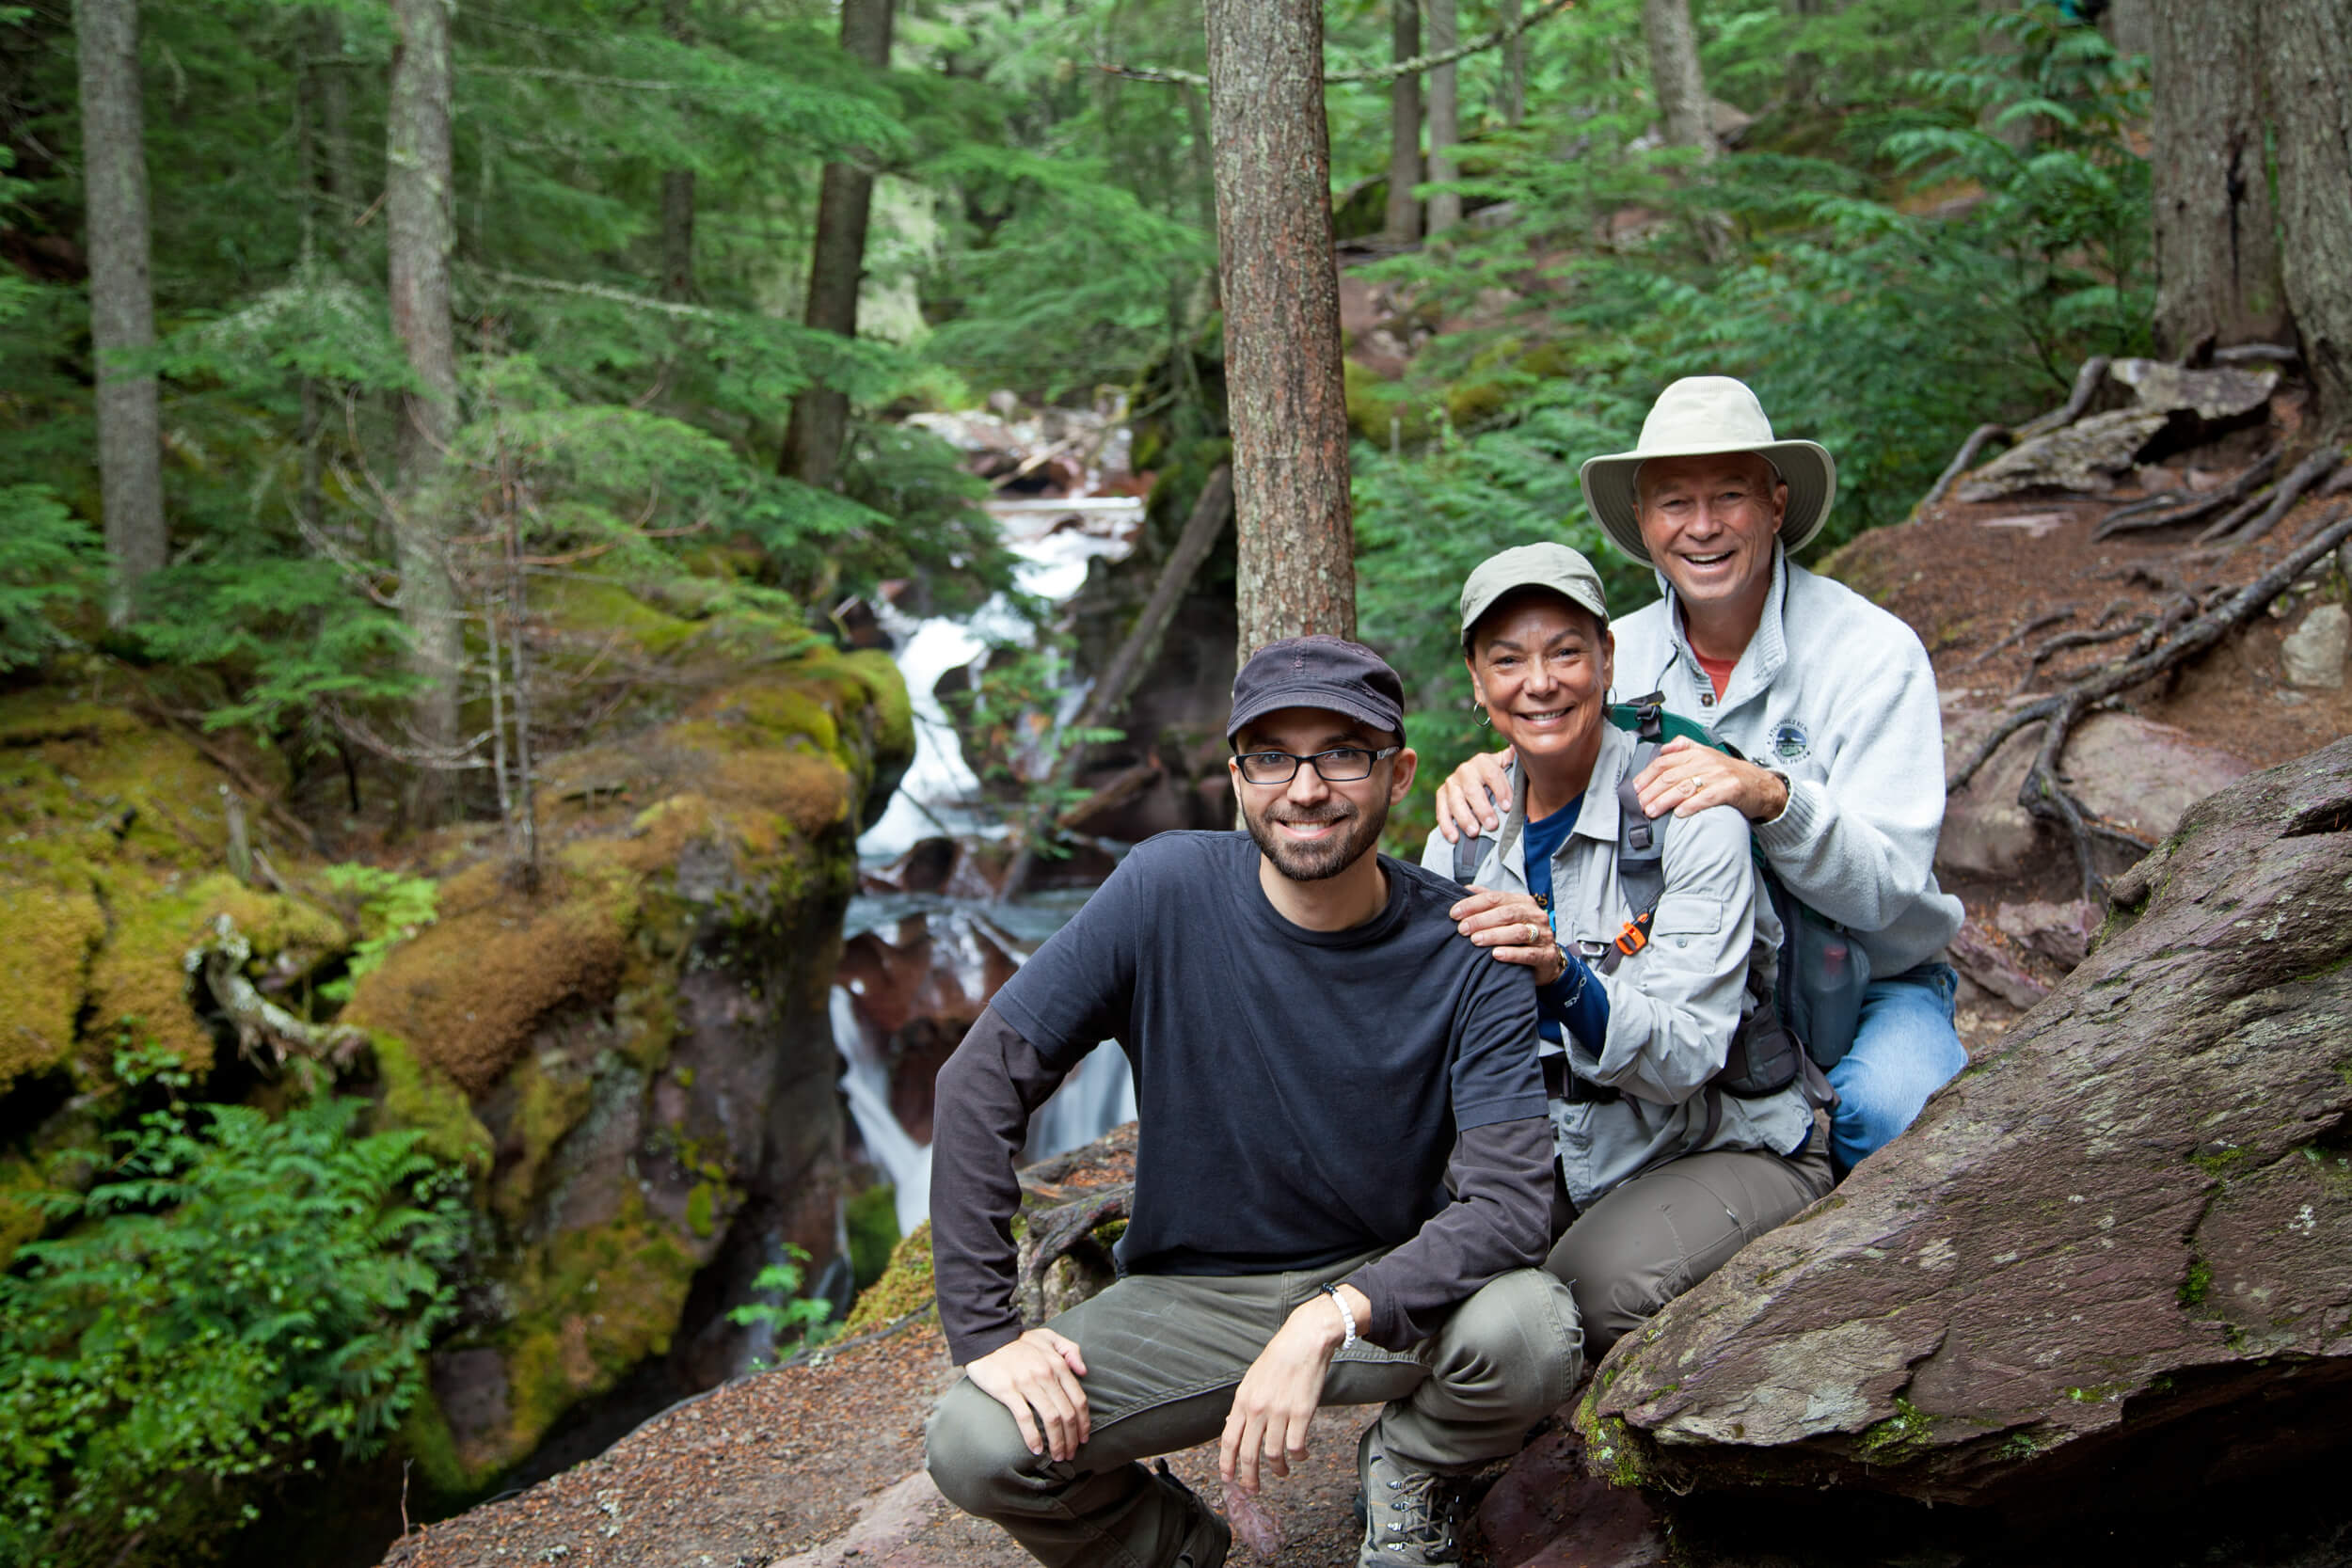 Charlie, Terry and John at Avalanche Creek. Park visit  #37 .